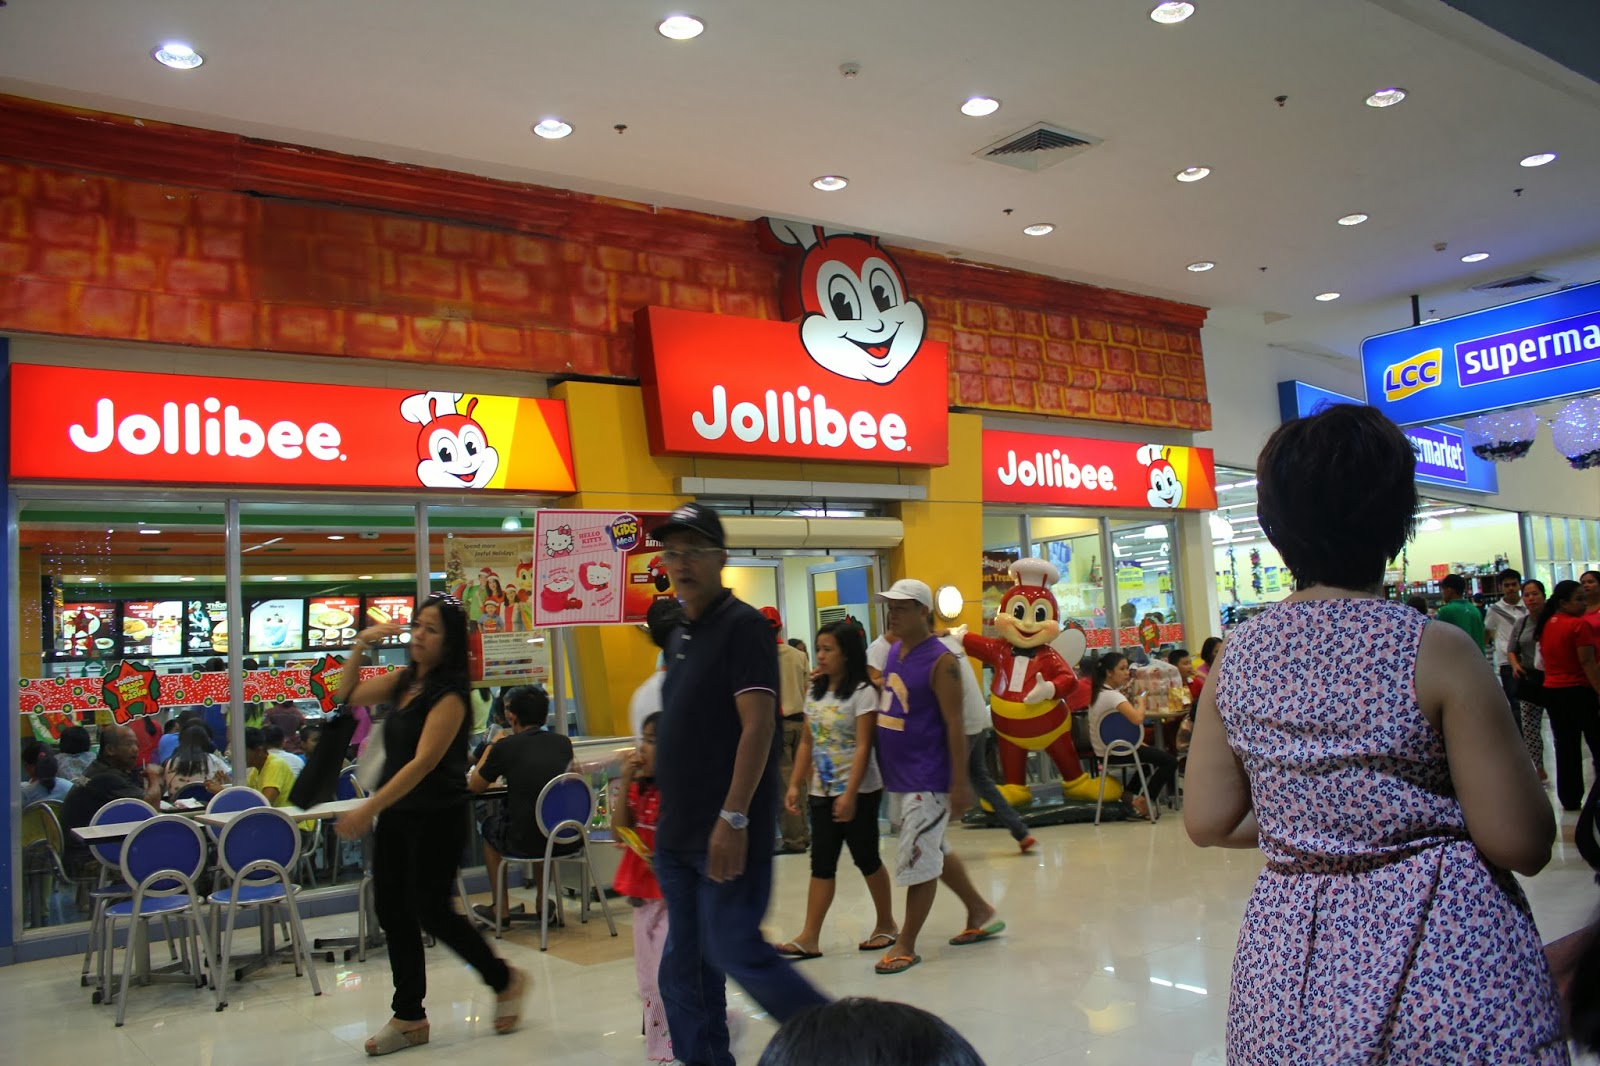 jolibee The beacon of success offering over 55,000 square meters of leasable space by 2018, jollibee tower features ground floor food concepts and a drive-thru provision as well as an events center.